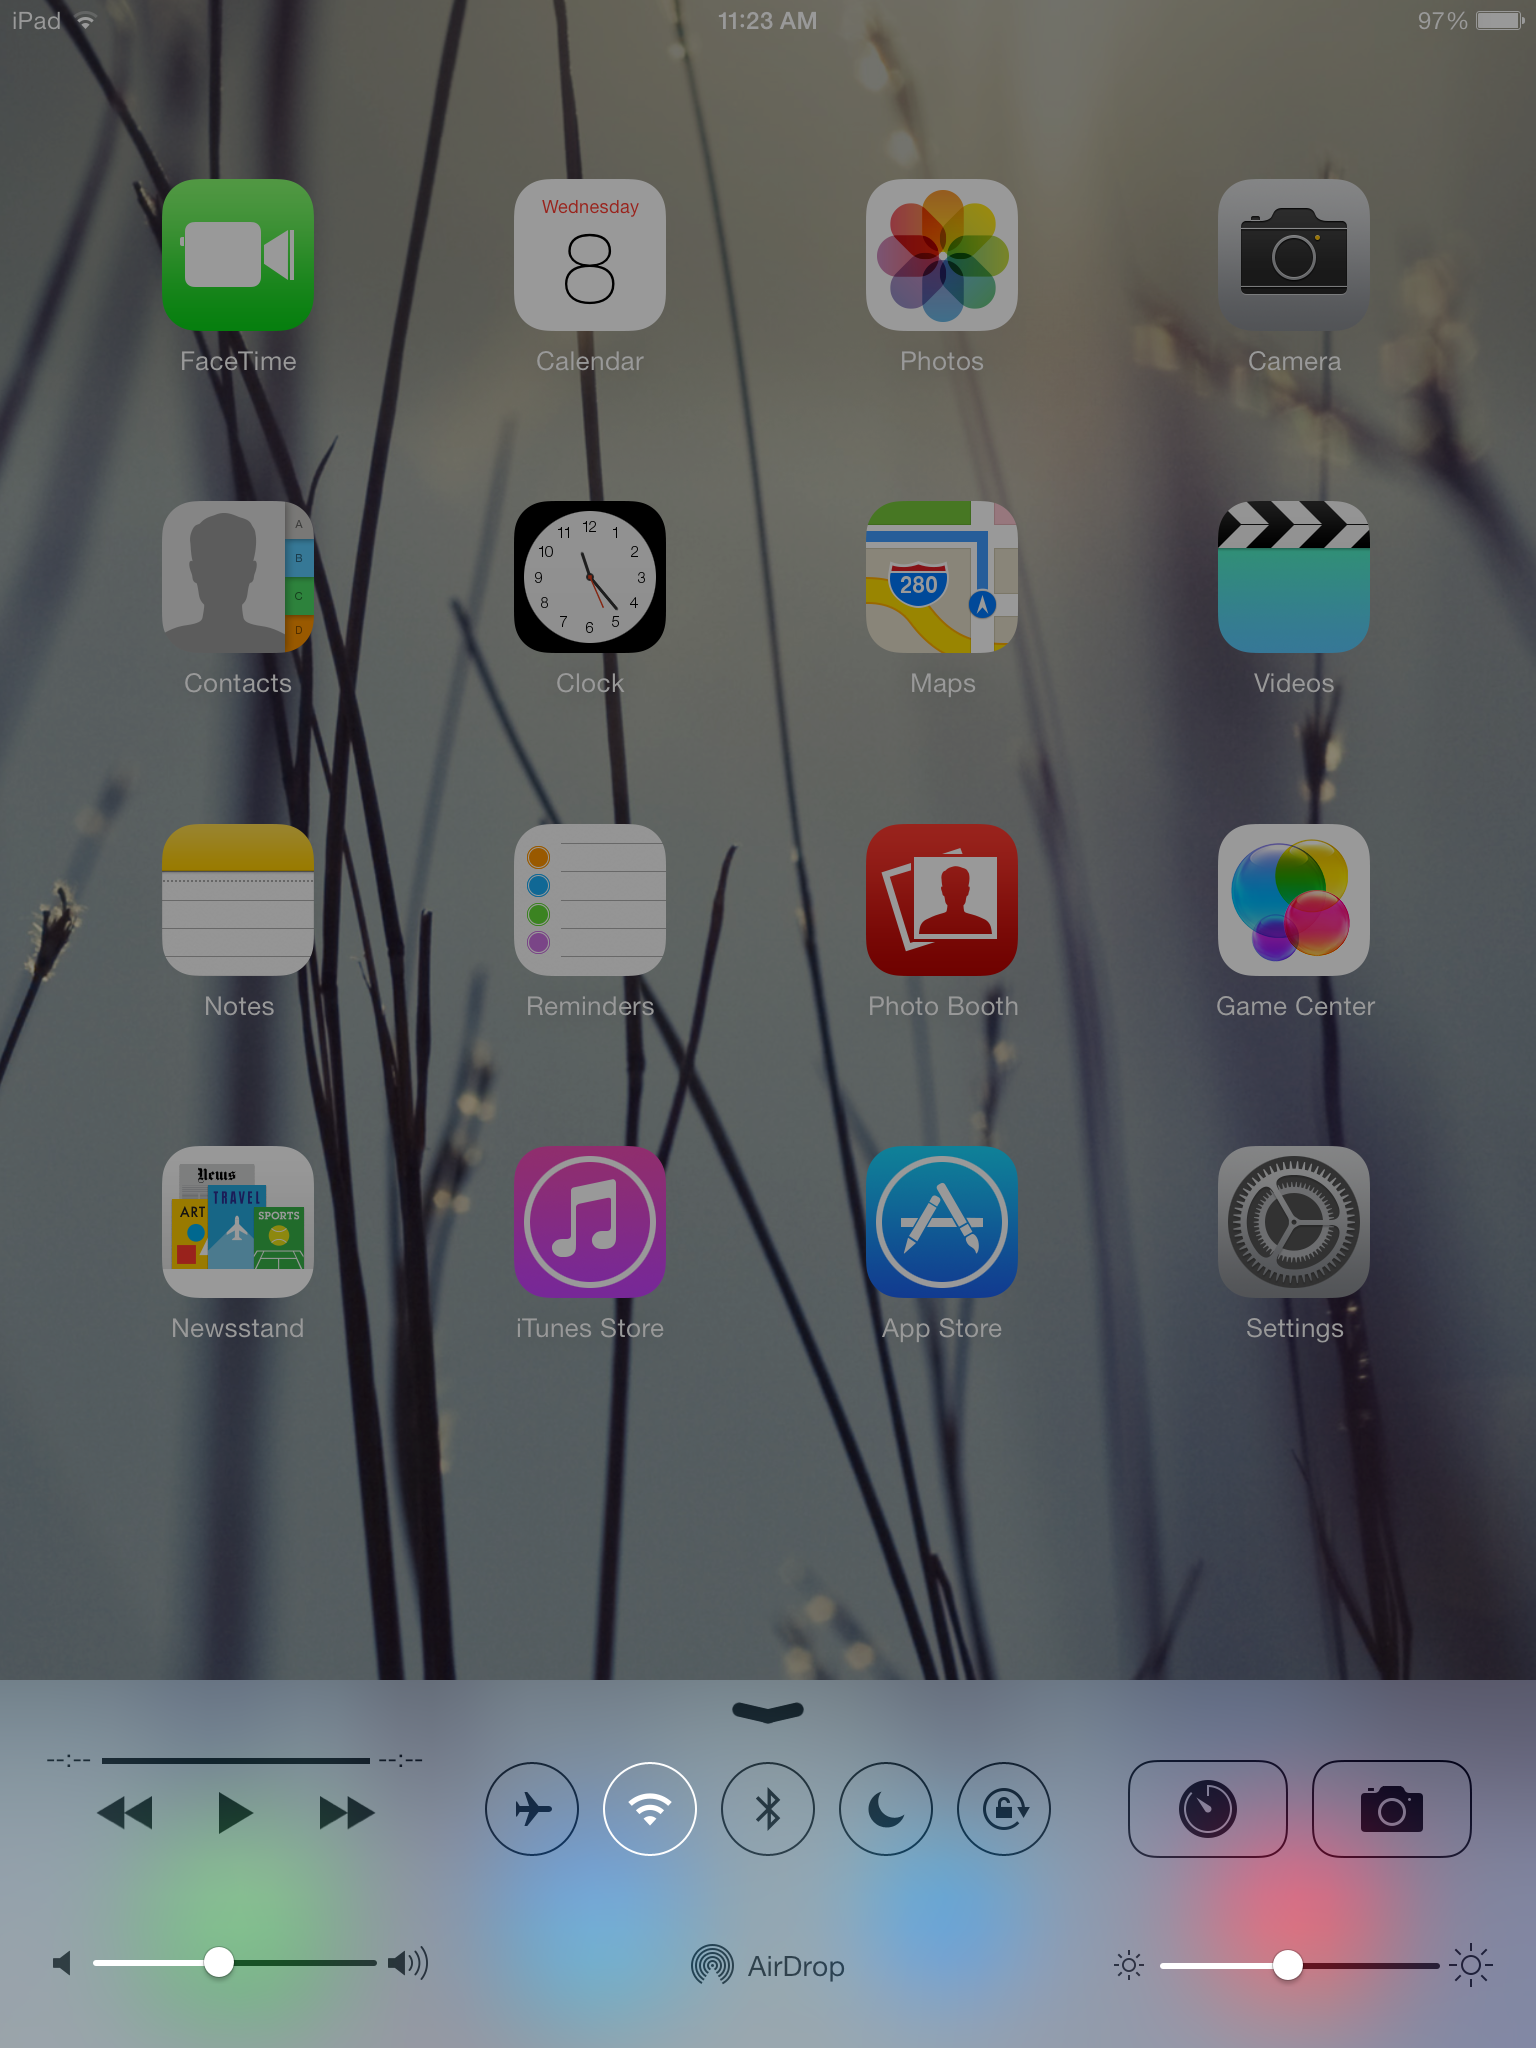 The iOS 7 Control Center features the same transparencies as the notification menu.